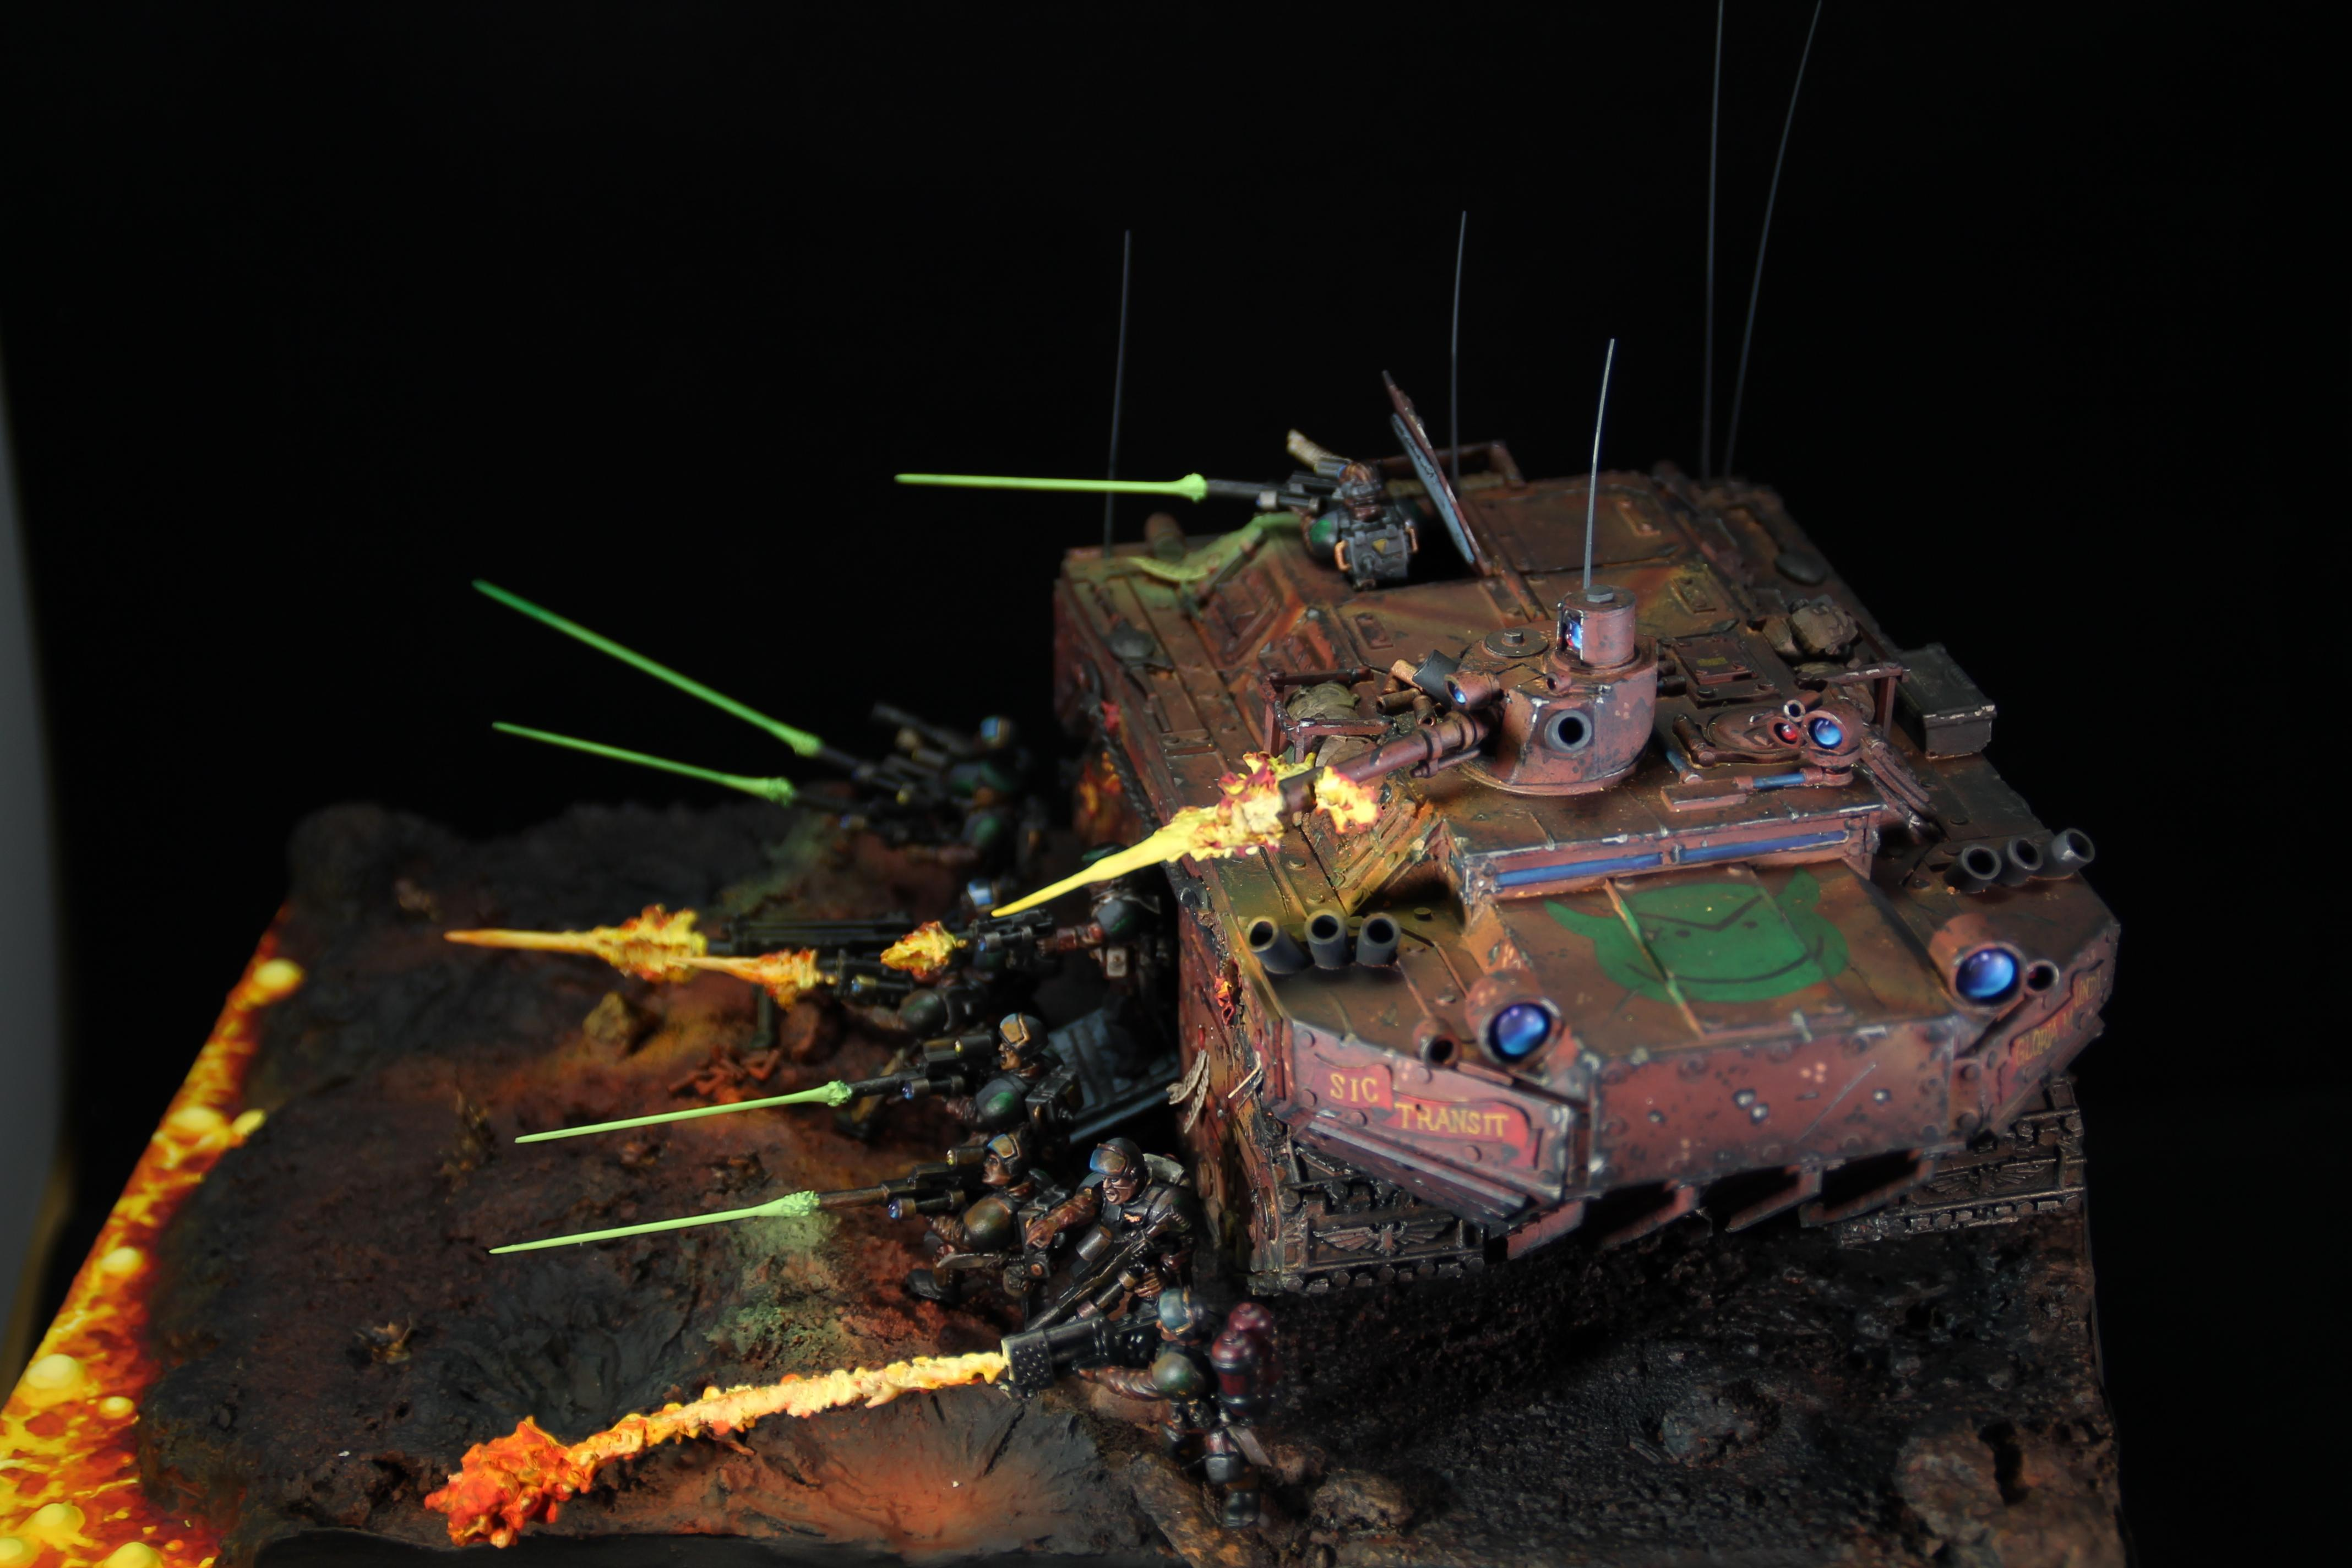 Chimera, Diarama, Imperial Guard, Object Source Lighting